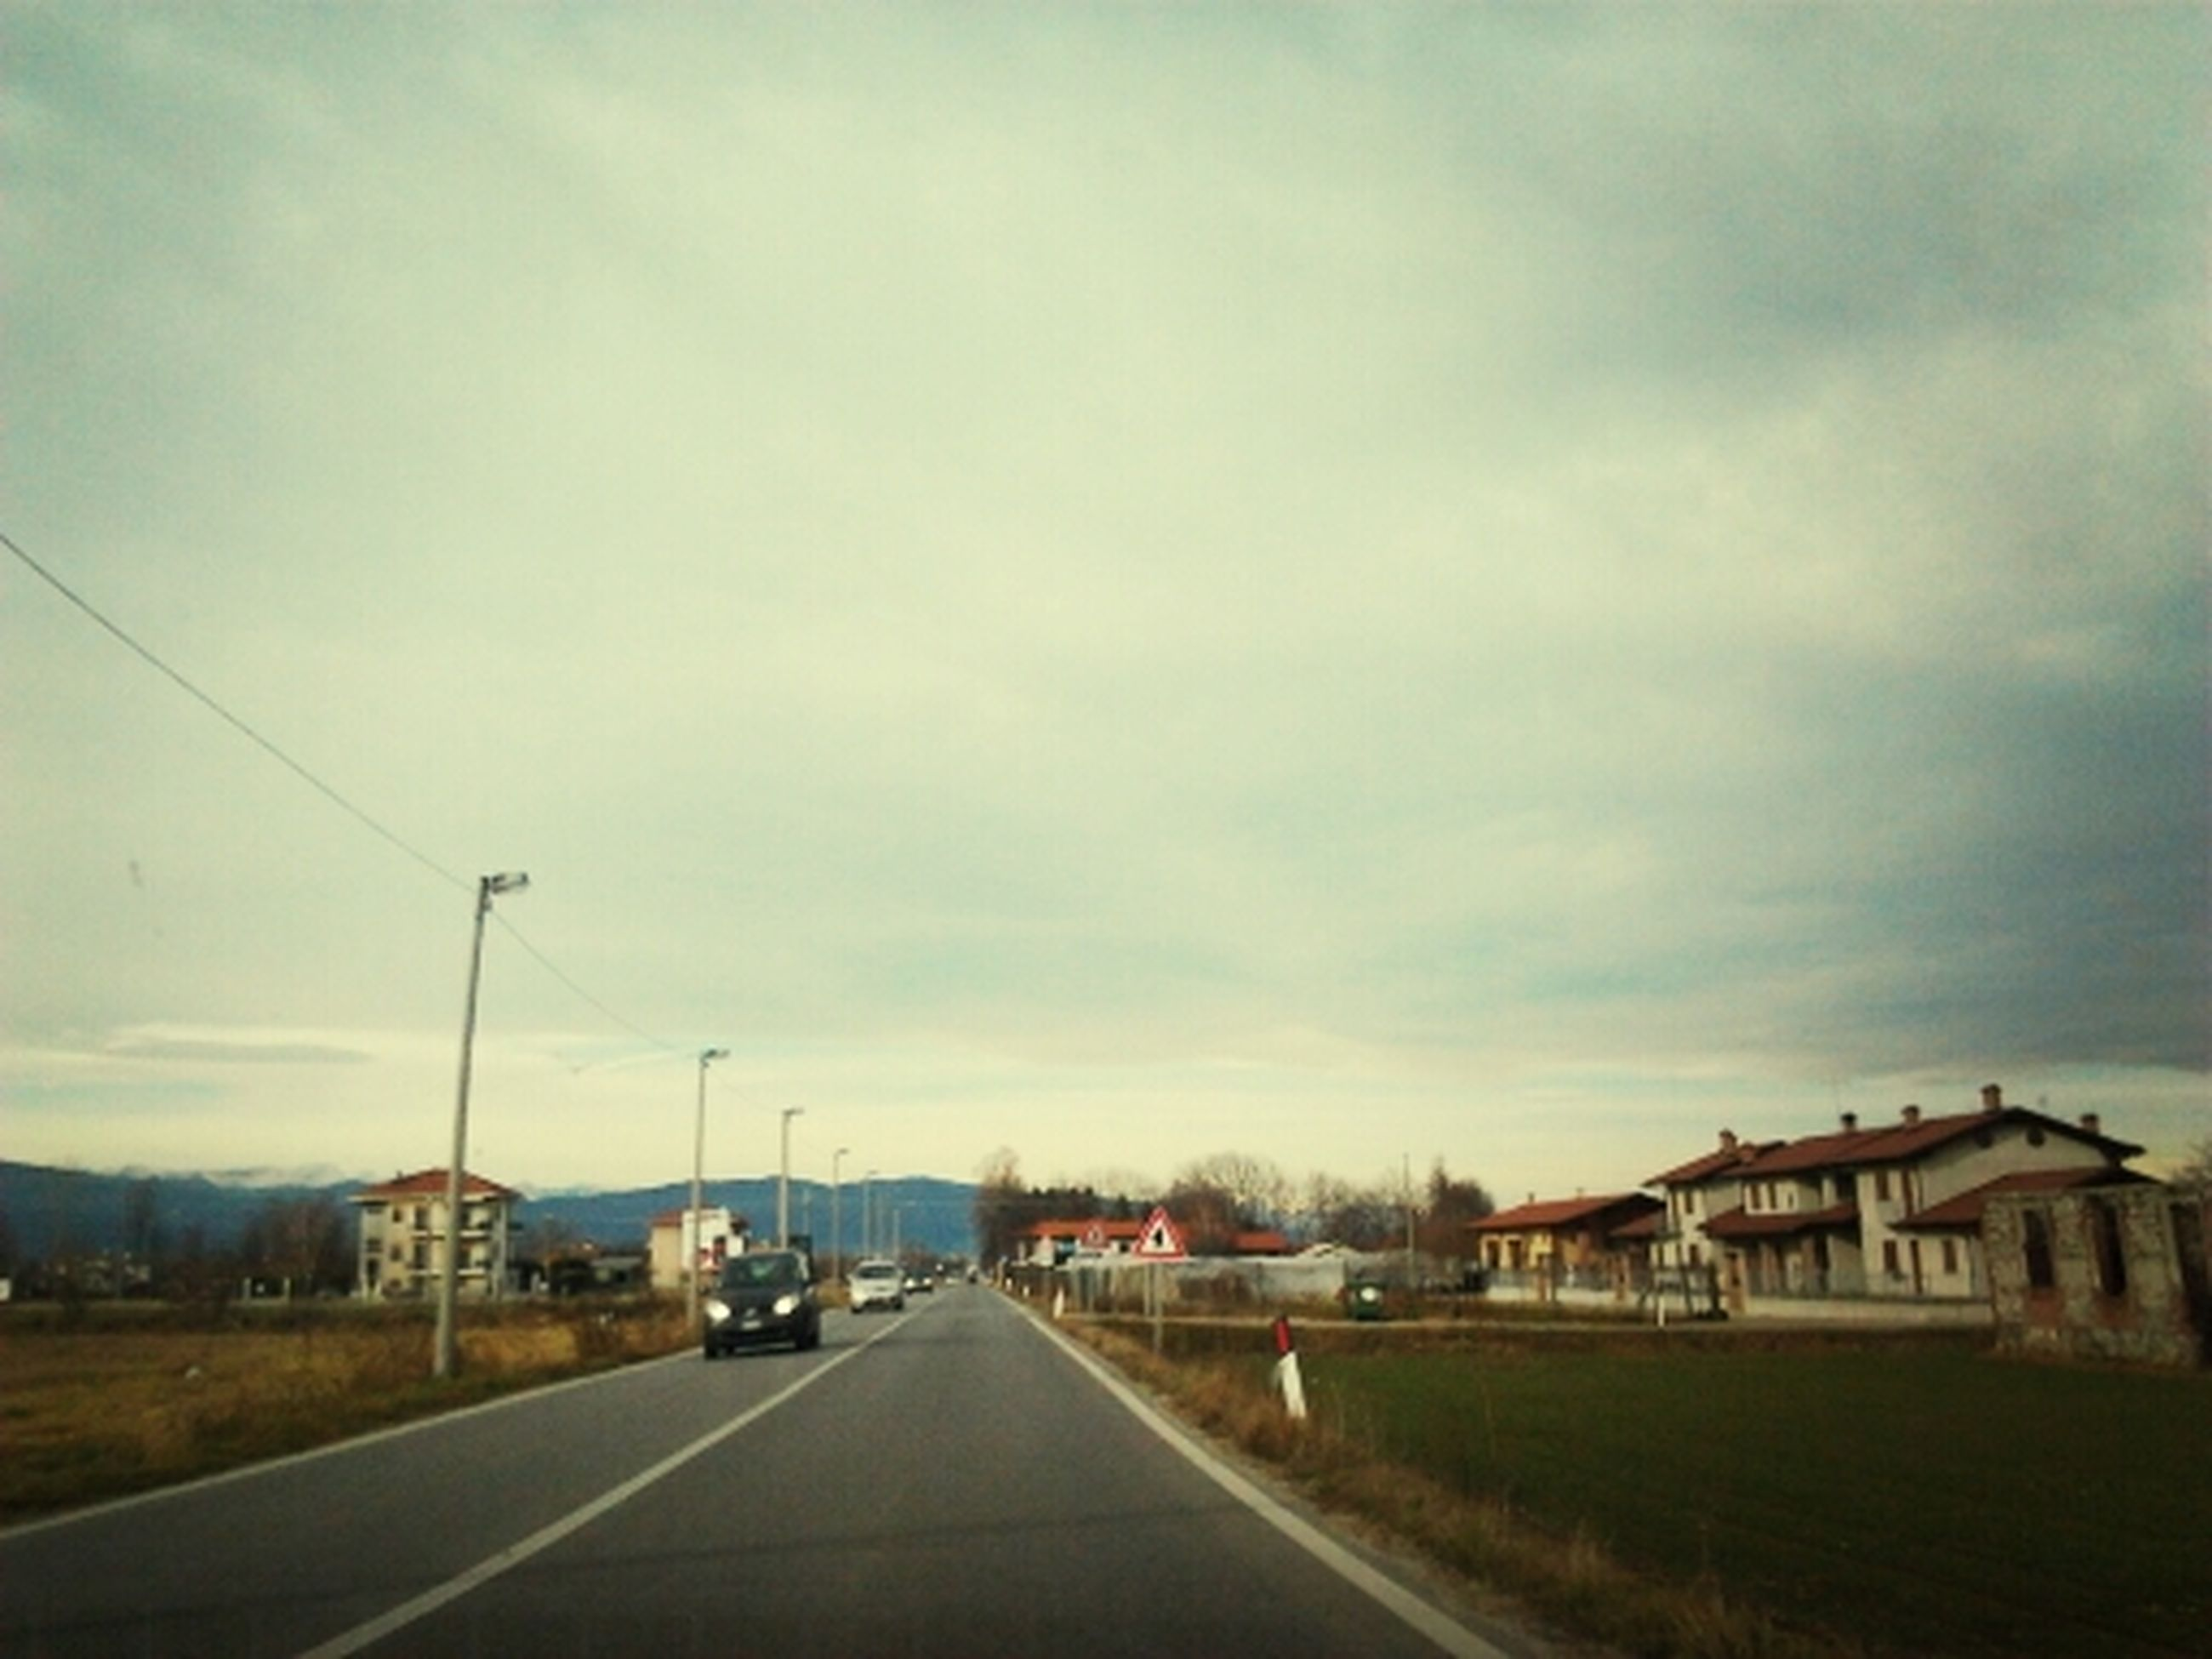 the way forward, transportation, sky, road, diminishing perspective, vanishing point, cloud - sky, cloudy, road marking, built structure, architecture, building exterior, empty, street, cloud, empty road, long, overcast, outdoors, country road